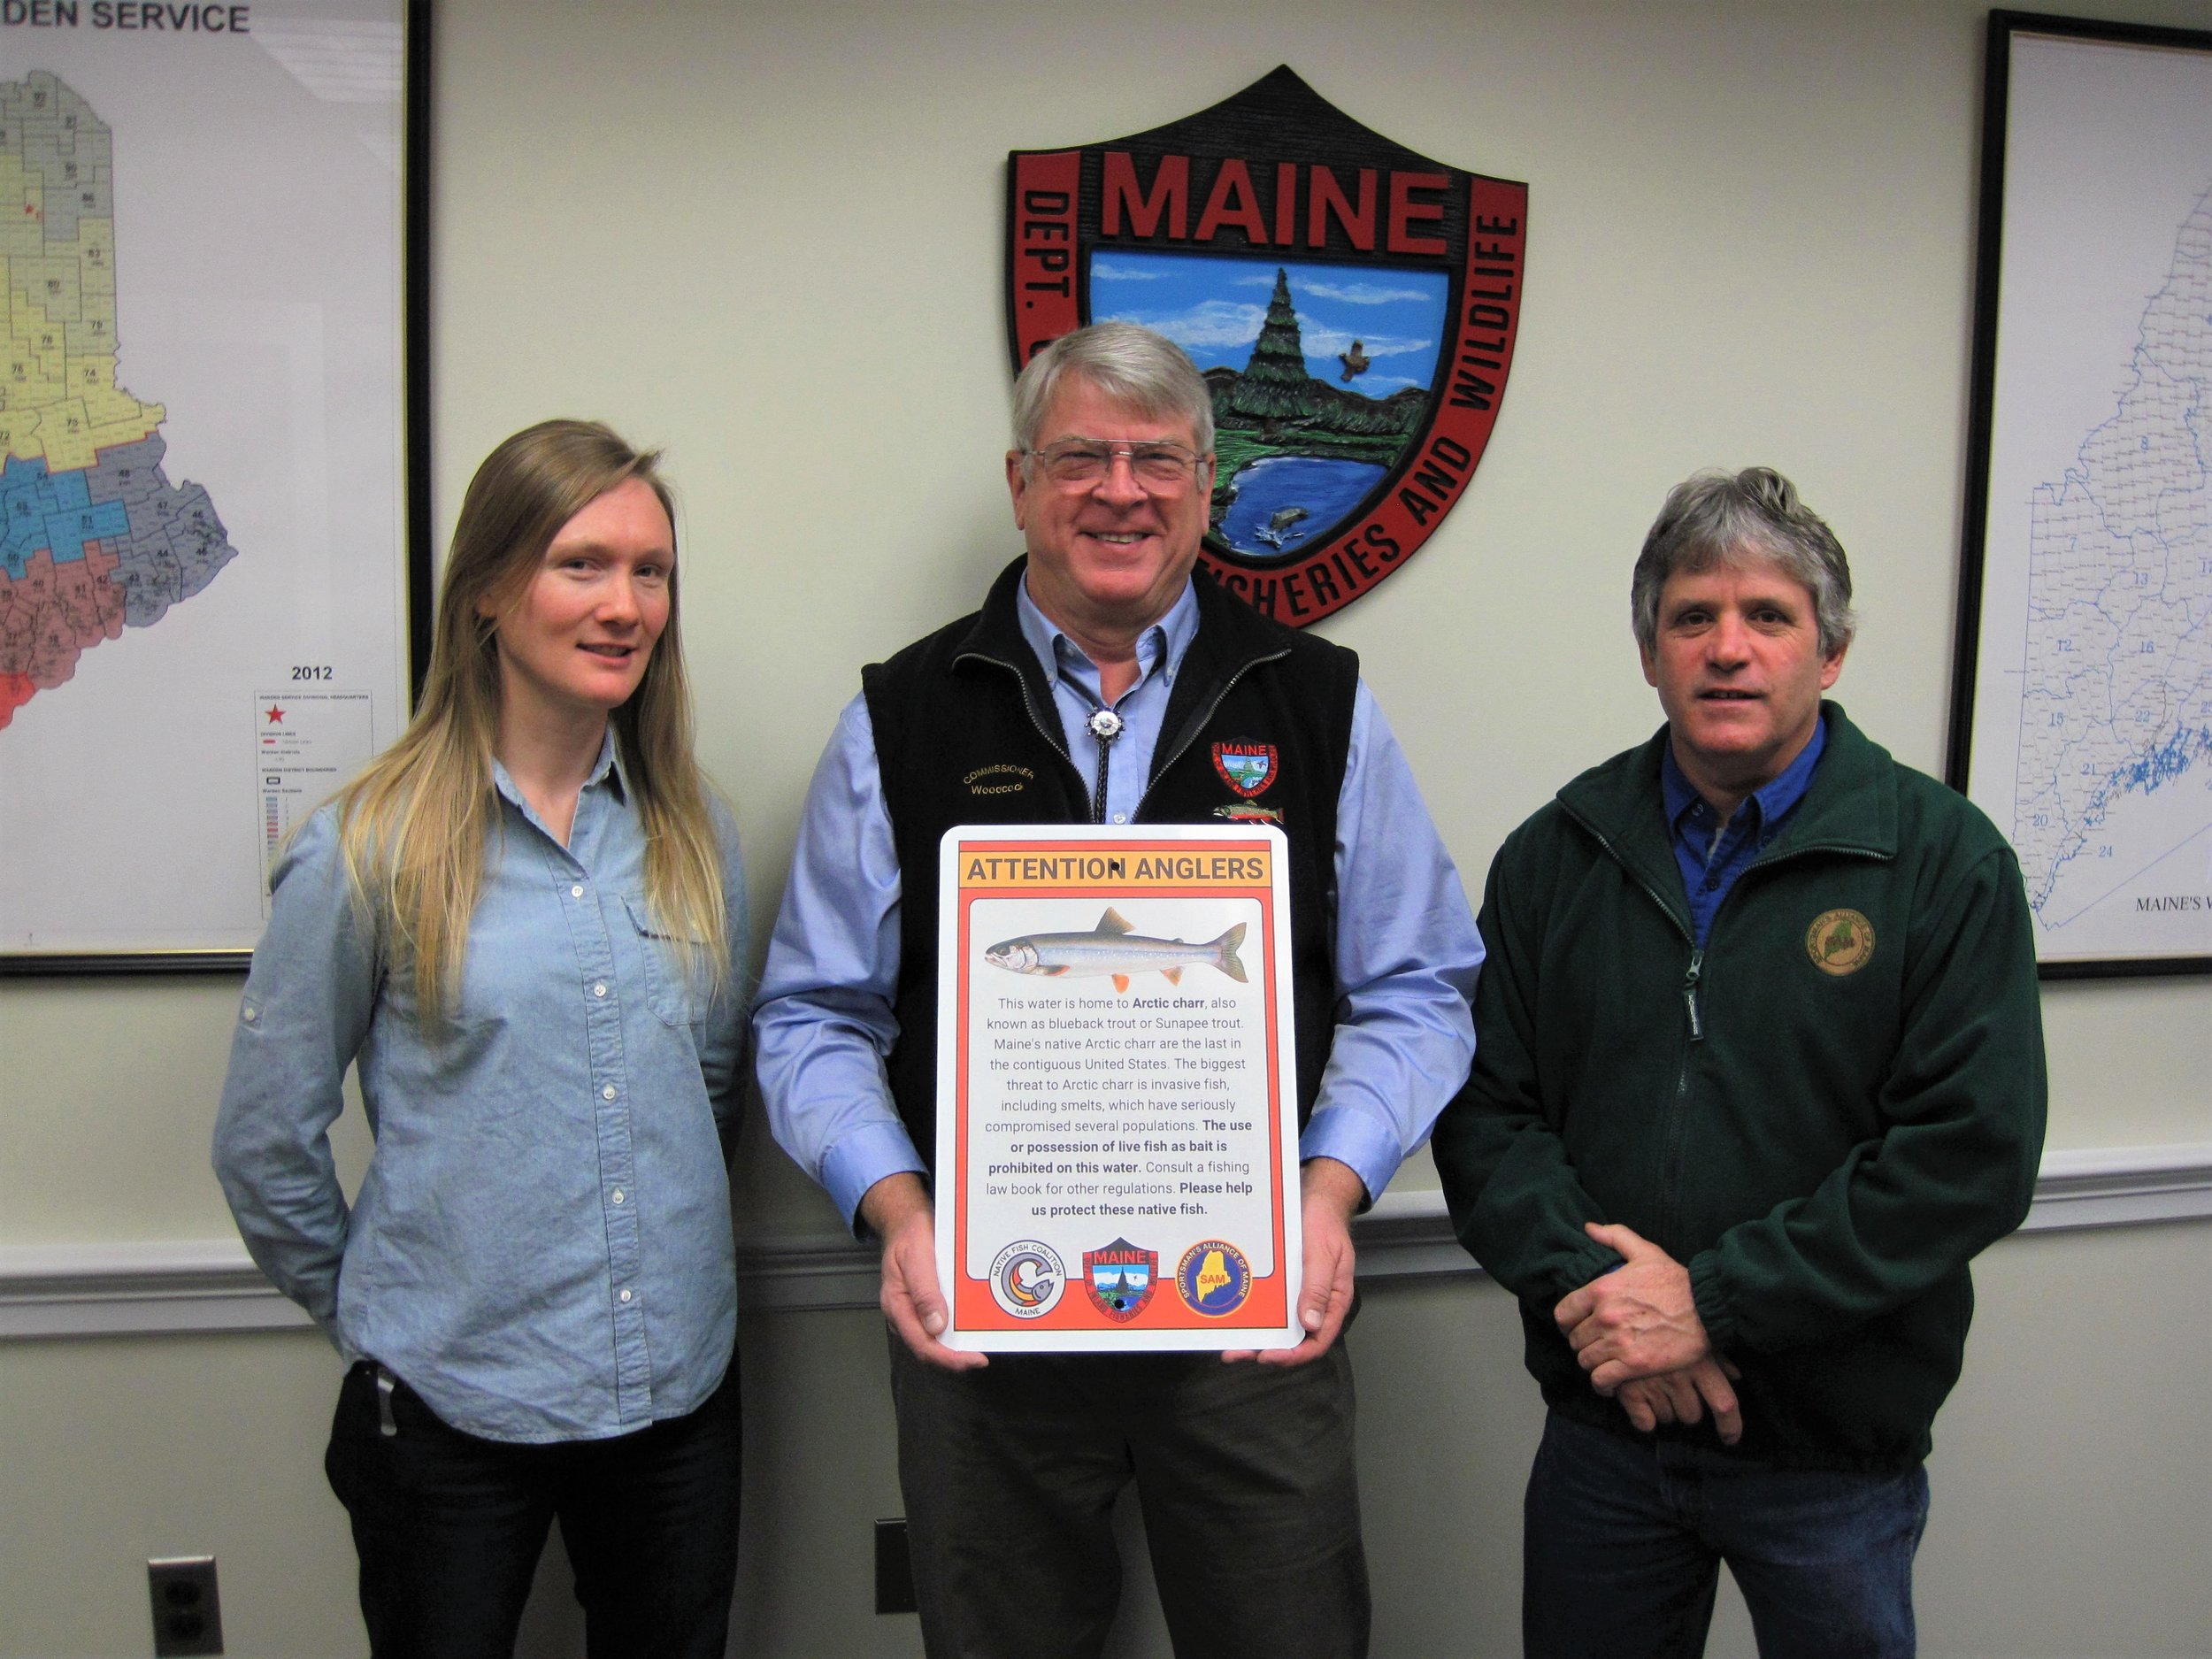 Maine NFC Chair Emily Bastian, former MDIFW Commissioner Chandler Woodcock, and SAM Executive Director David Trahan with the draft Arctic charr sign.